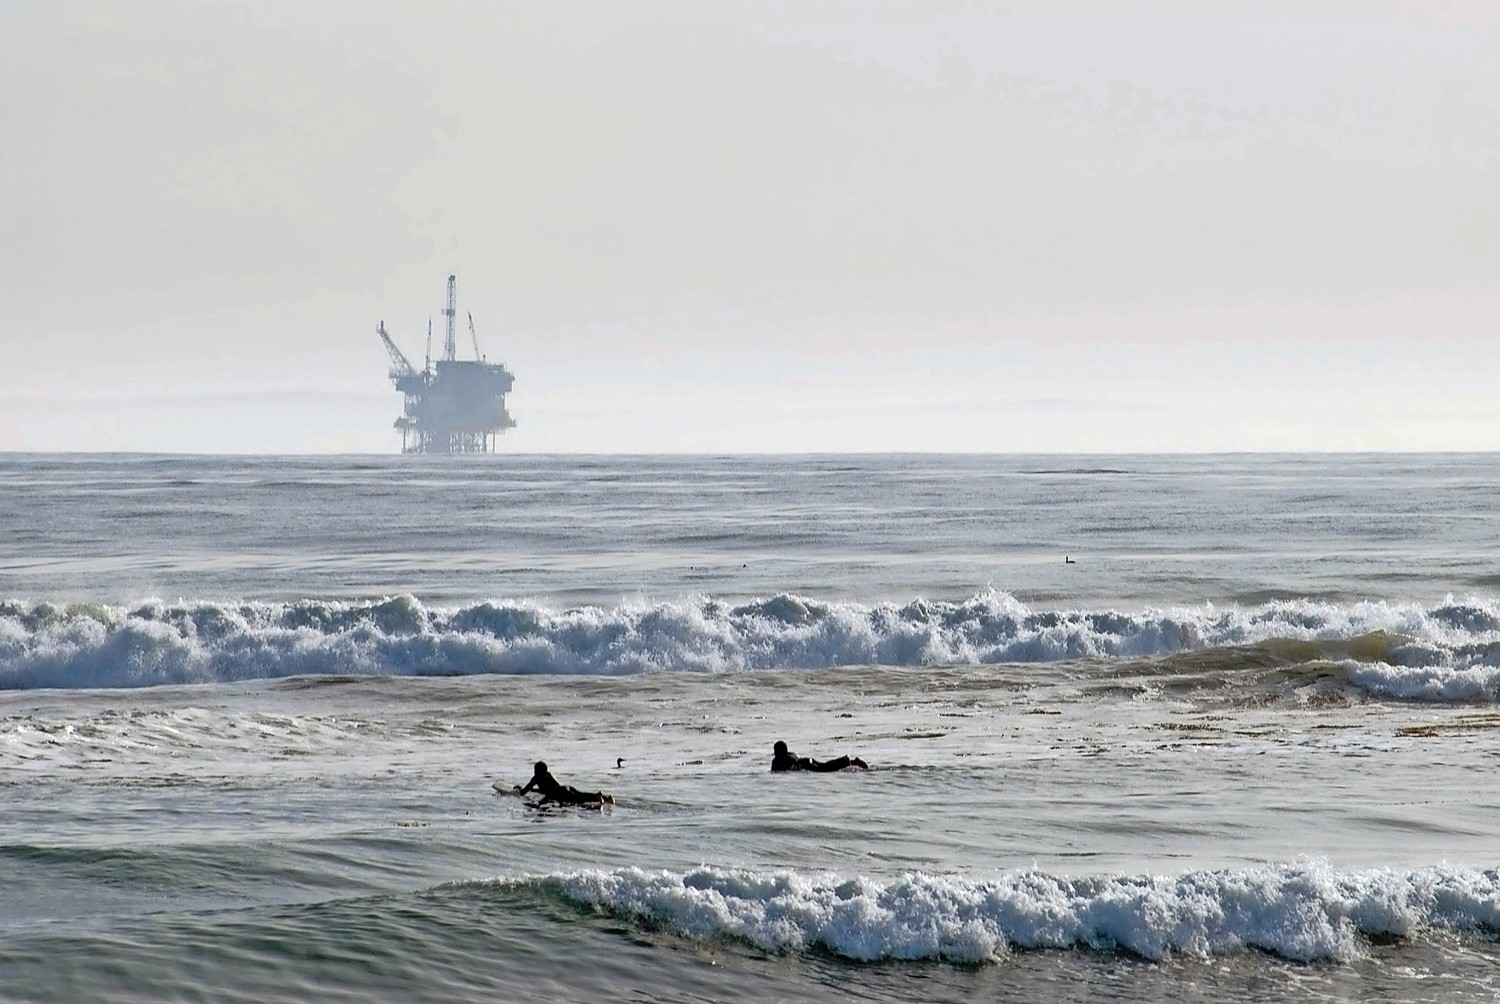 An oil drilling rig off of Santa Barbara, Calif. The Trump administration has proposed opening more than 90 percent of U.S. coastal waters to oil drilling.